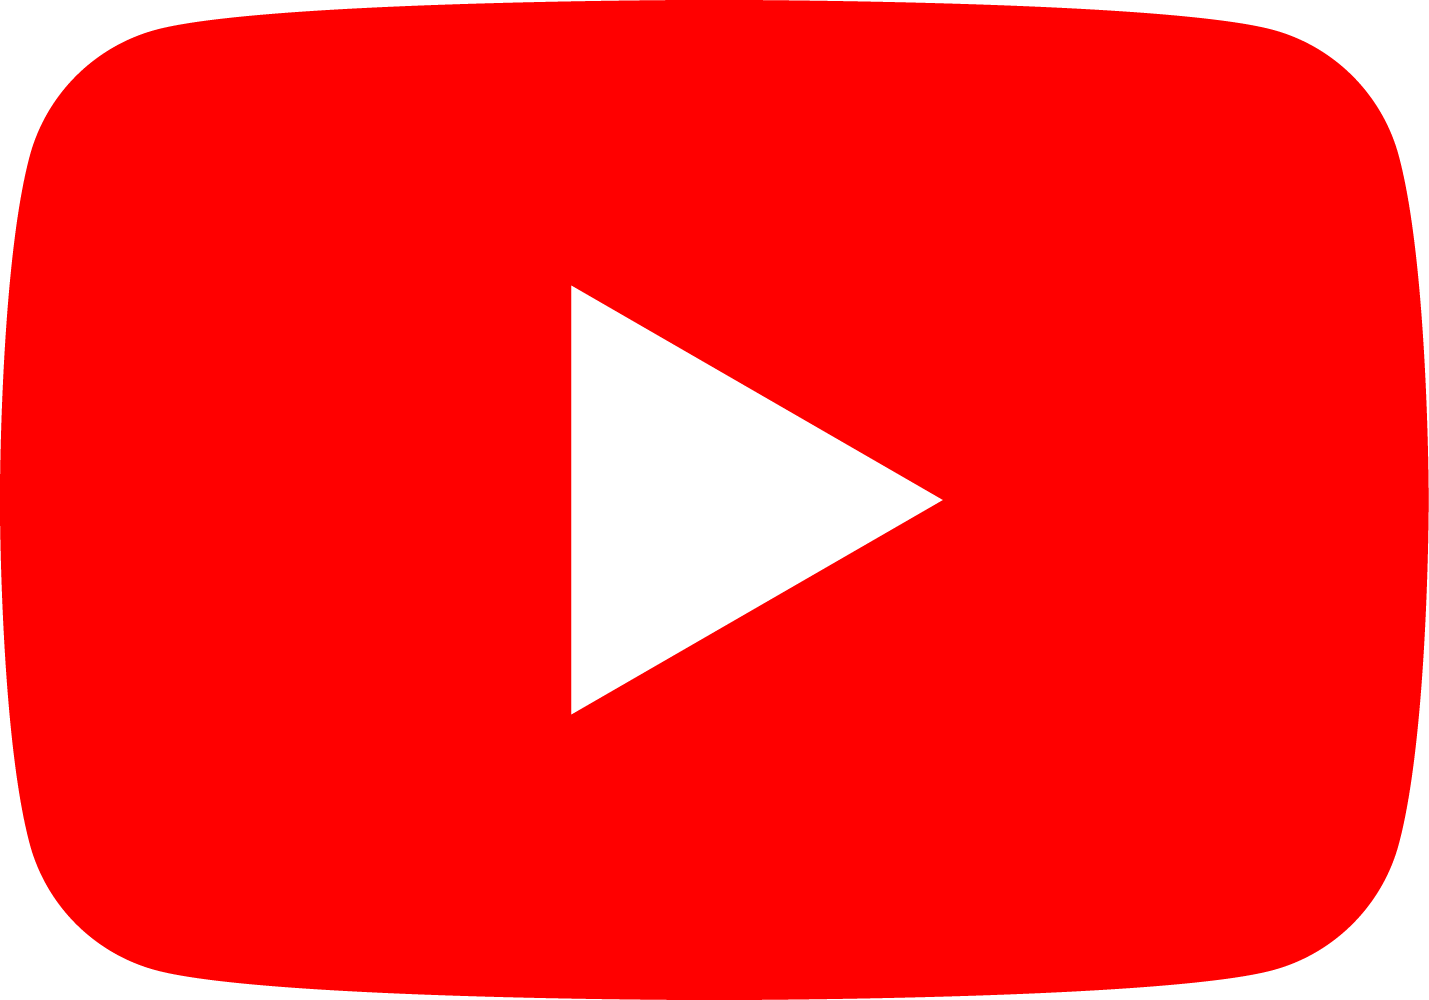 Logo Computer Youtube Icons Free HQ Image PNG Image